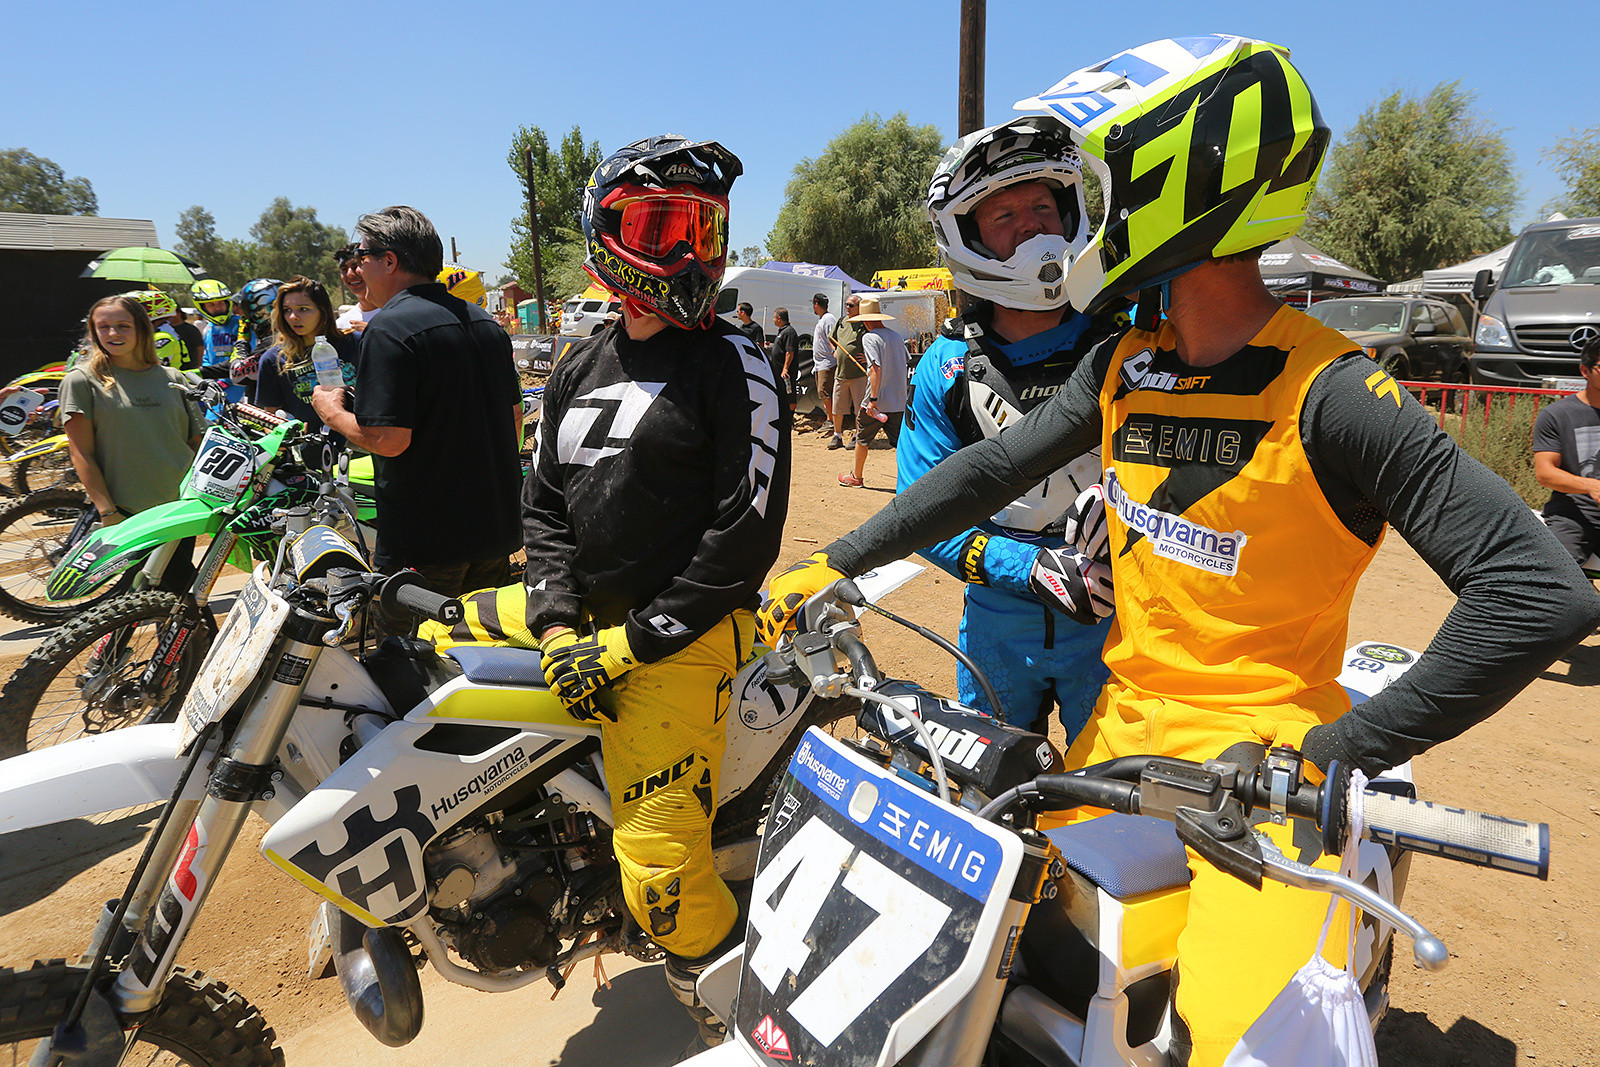 In the pro class you have everything from former National Champs (Jeff Emig, 47), to up-and-comers (Zac Commans, 20), guys we haven't seen for a bit (Hunter Hewitt on the 1), and off-road legends like Destry Abbott.